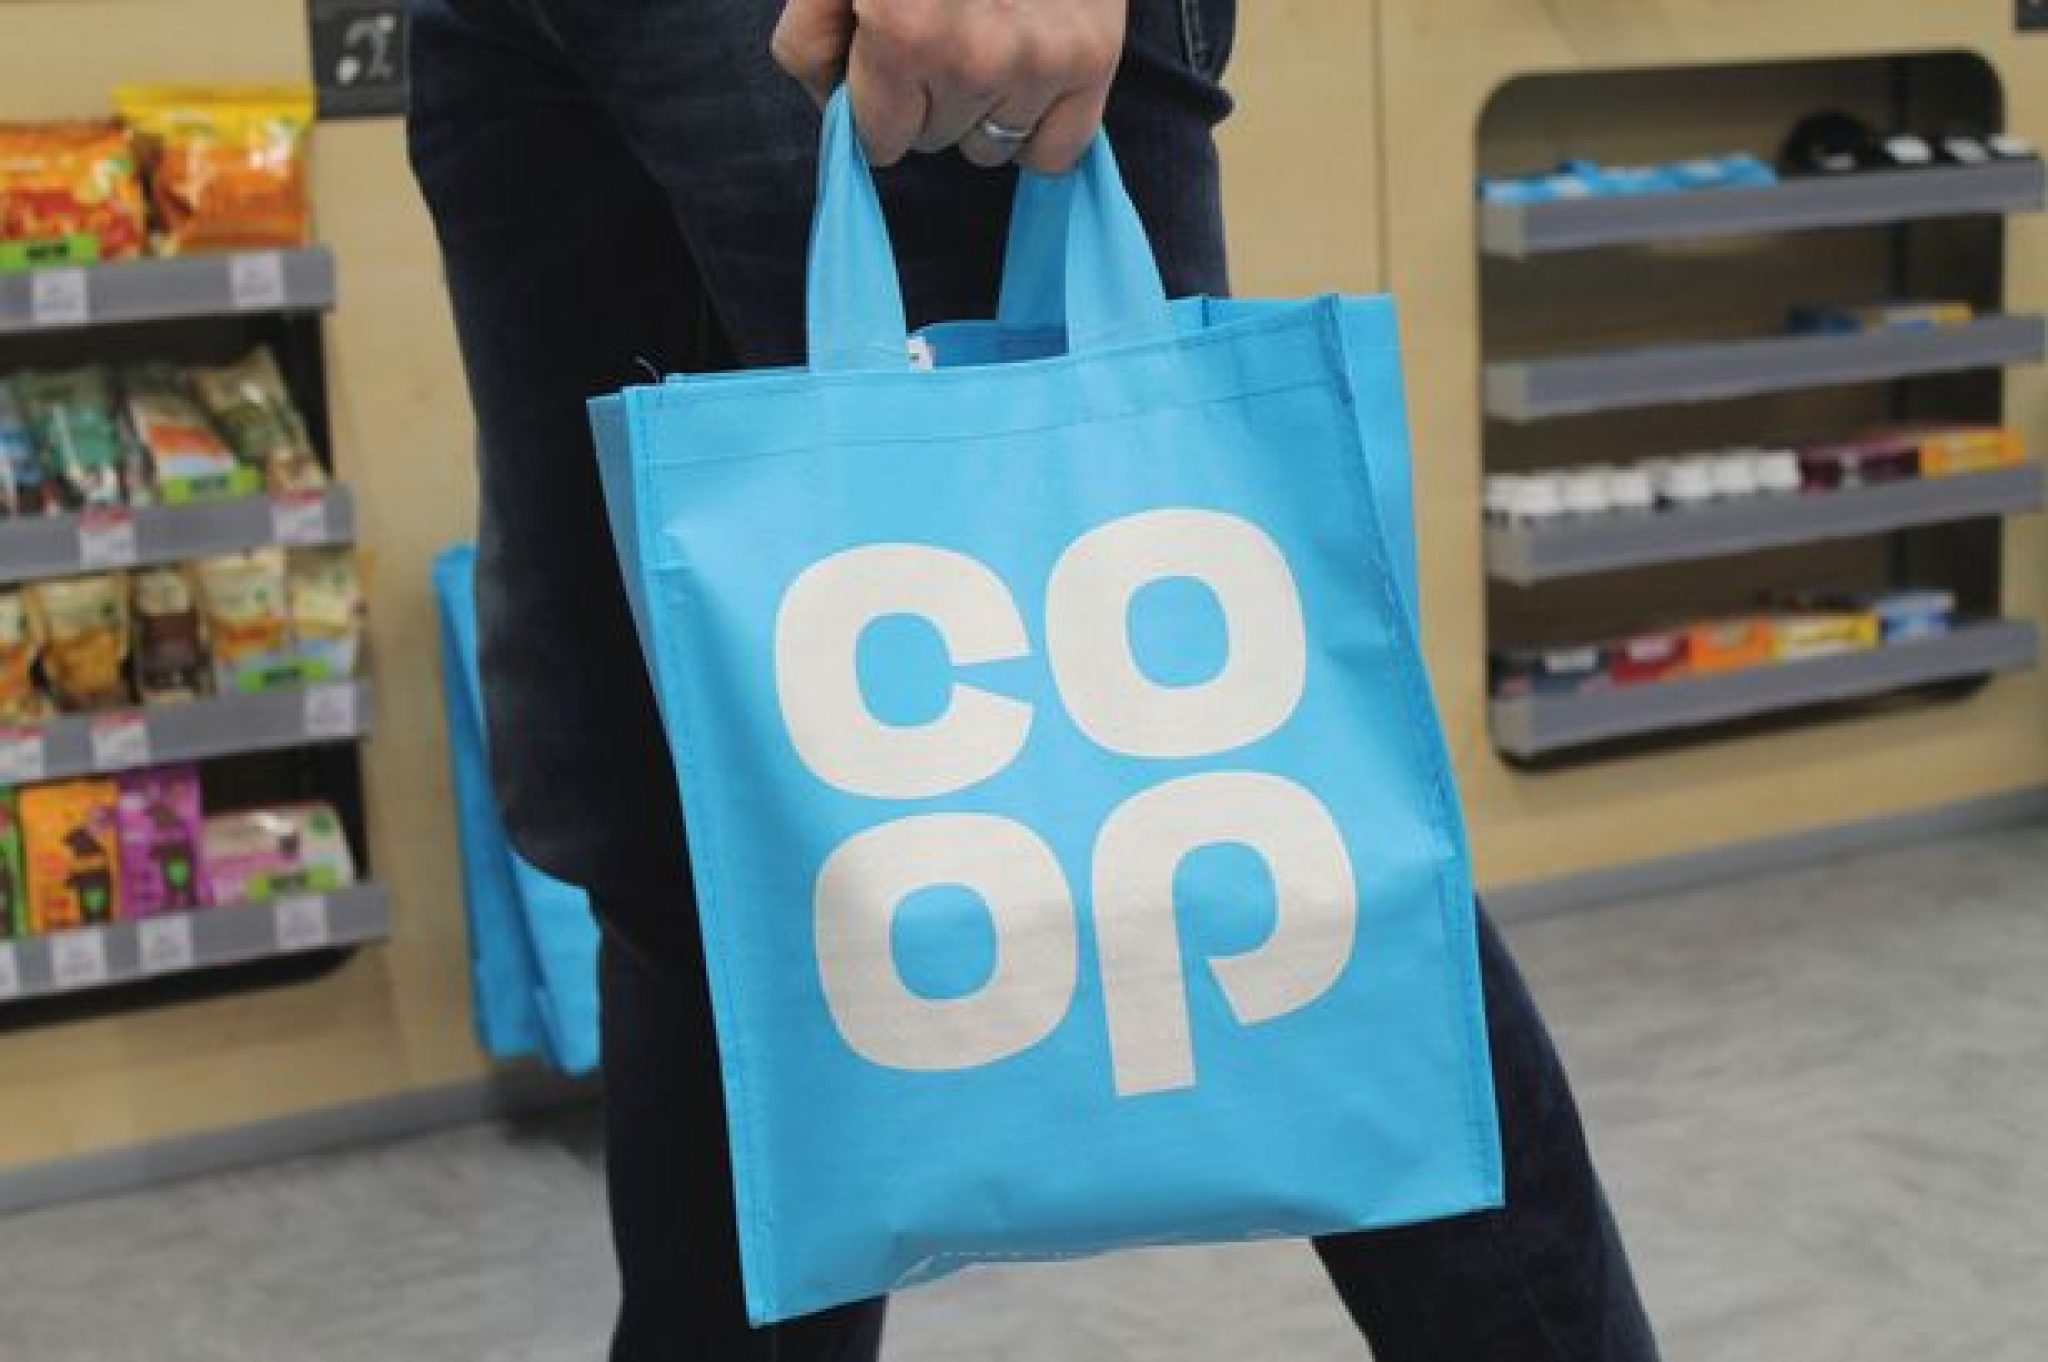 Co-op banning bags for life